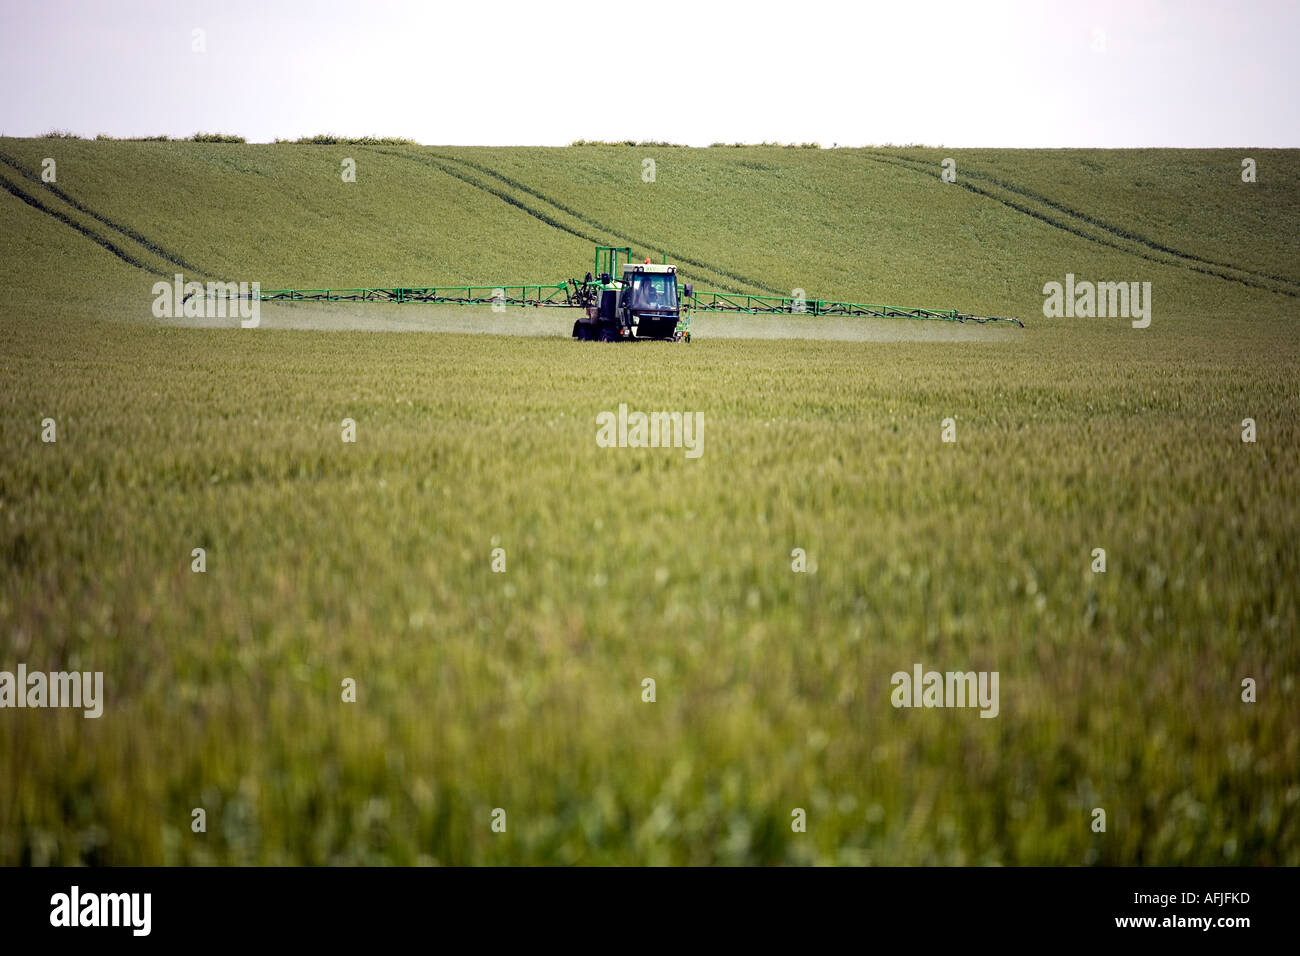 A crop sprayer in action in a field near Tewkesbury Gloucestershire England UK - Stock Image